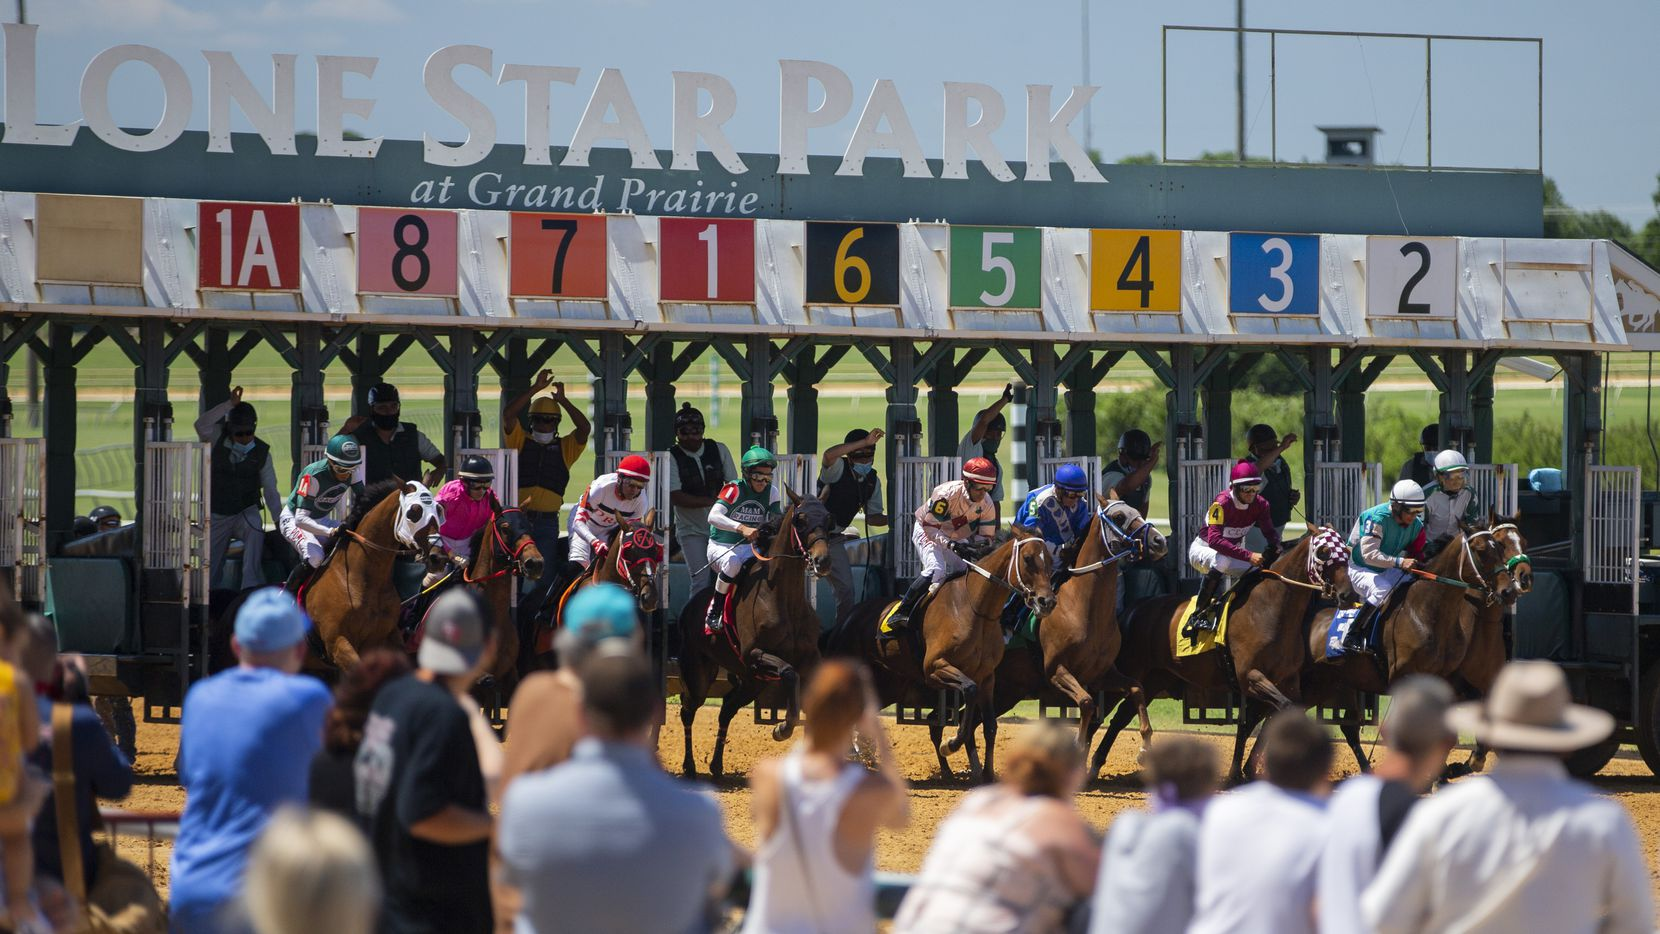 Fans look on during the start of a Claiming race at Lone Star Park in Grand Prairie, Sunday, June 14, 2020.